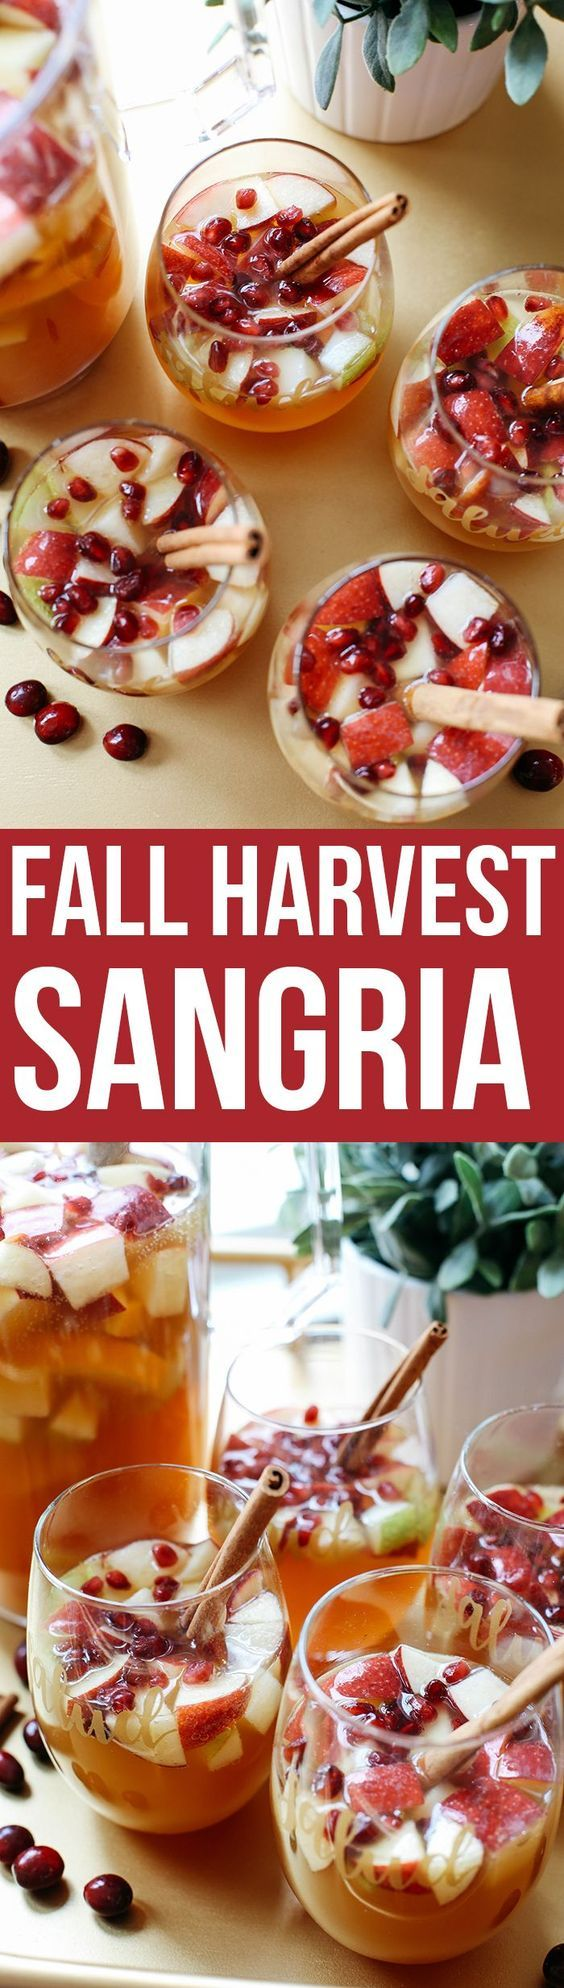 This Fall Harvest Sangria is the perfect holiday cocktail filled with crisp apples, pears, cranberries, cinnamon sticks and fresh apple cider! {wine glass writer}